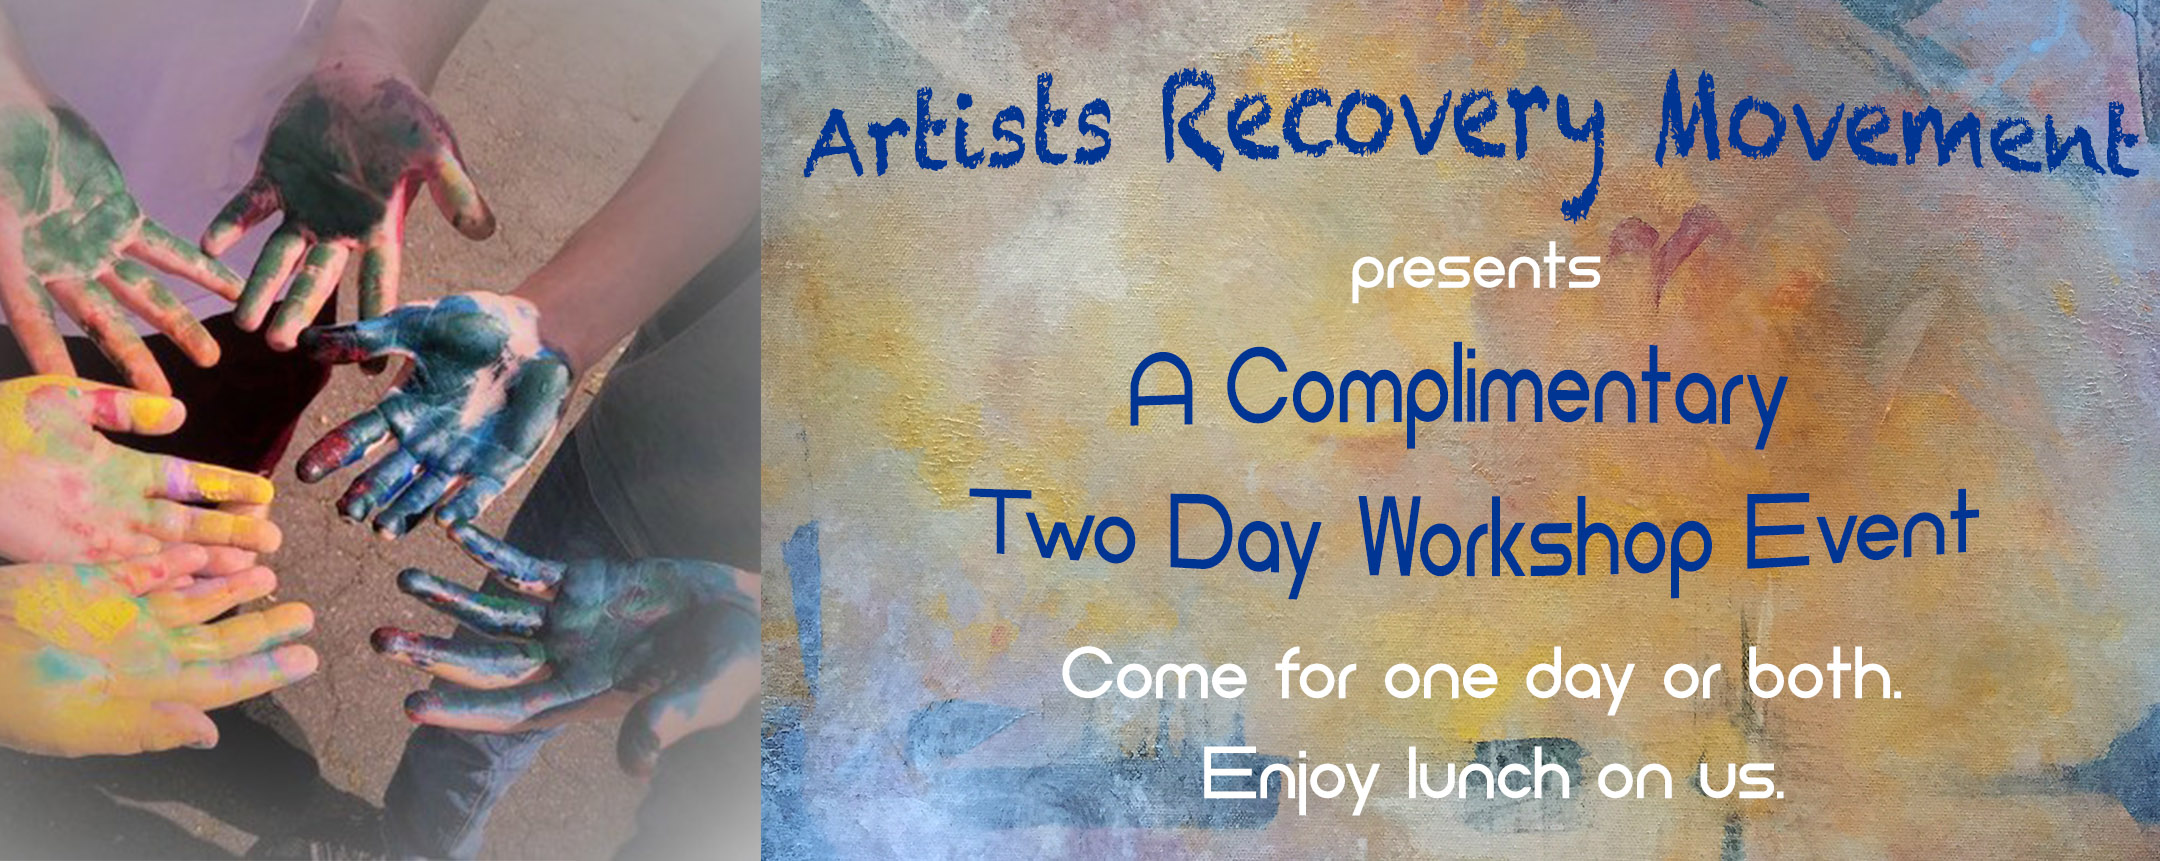 Artists Recovery 2 Day Workshop graphic